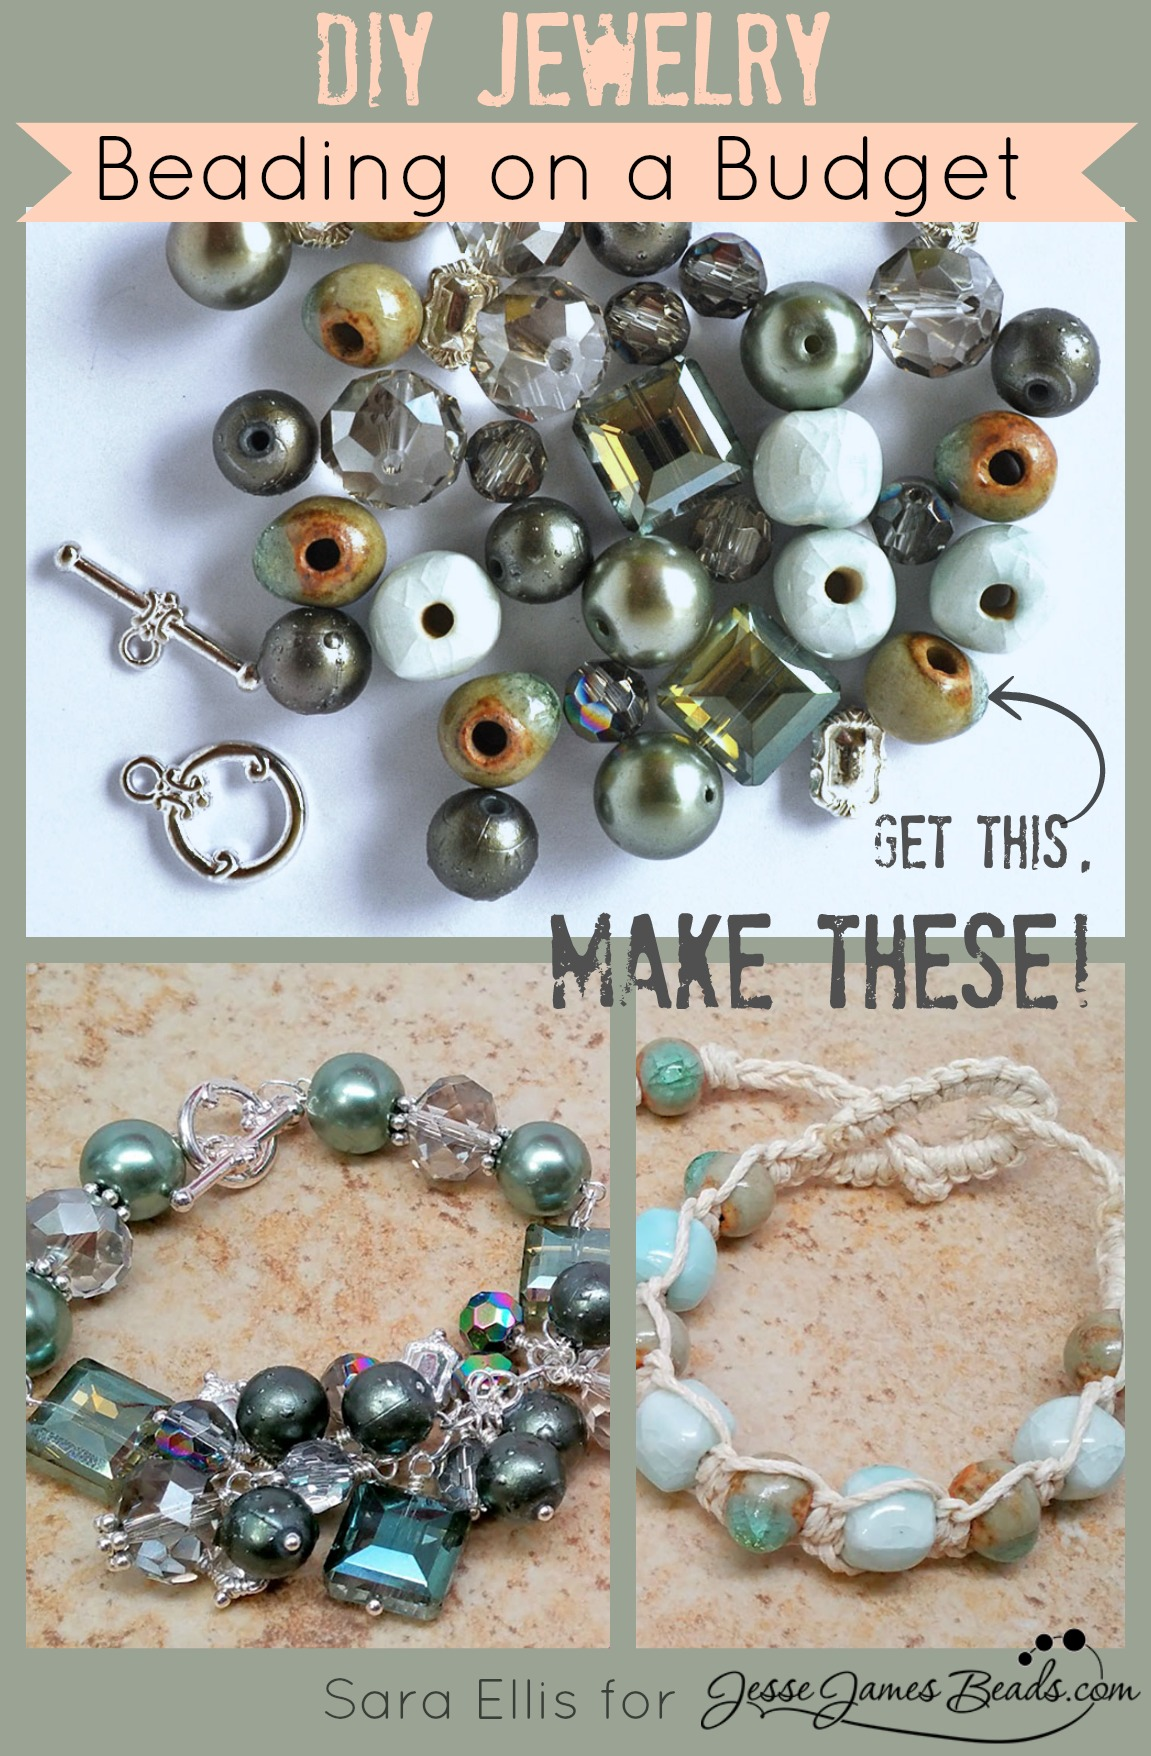 Beading on a Budget – Two Projects for the Price of One